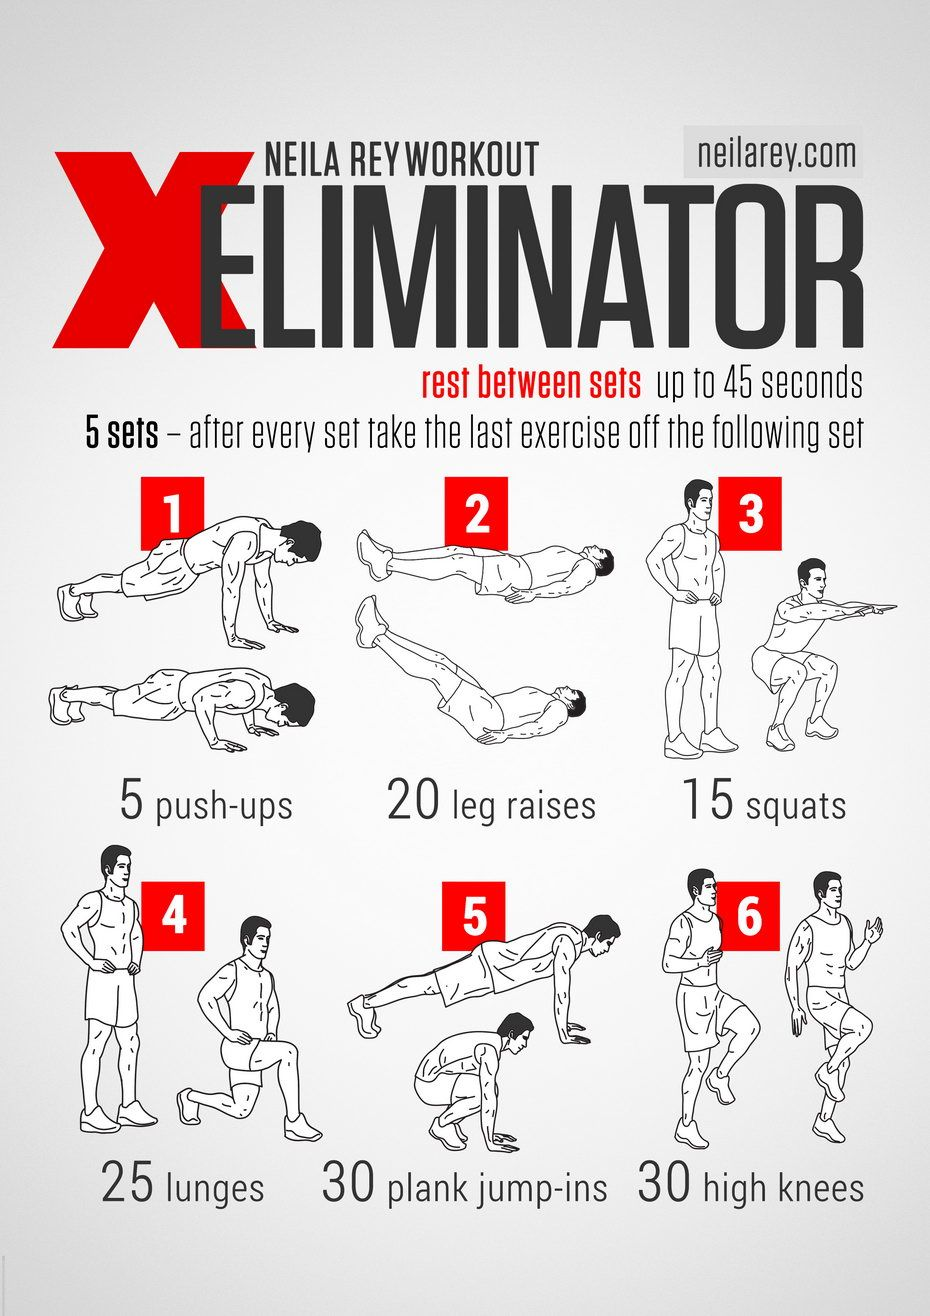 Eliminator Workout Works Chest Triceps Biceps Lower Abs Quads Calves